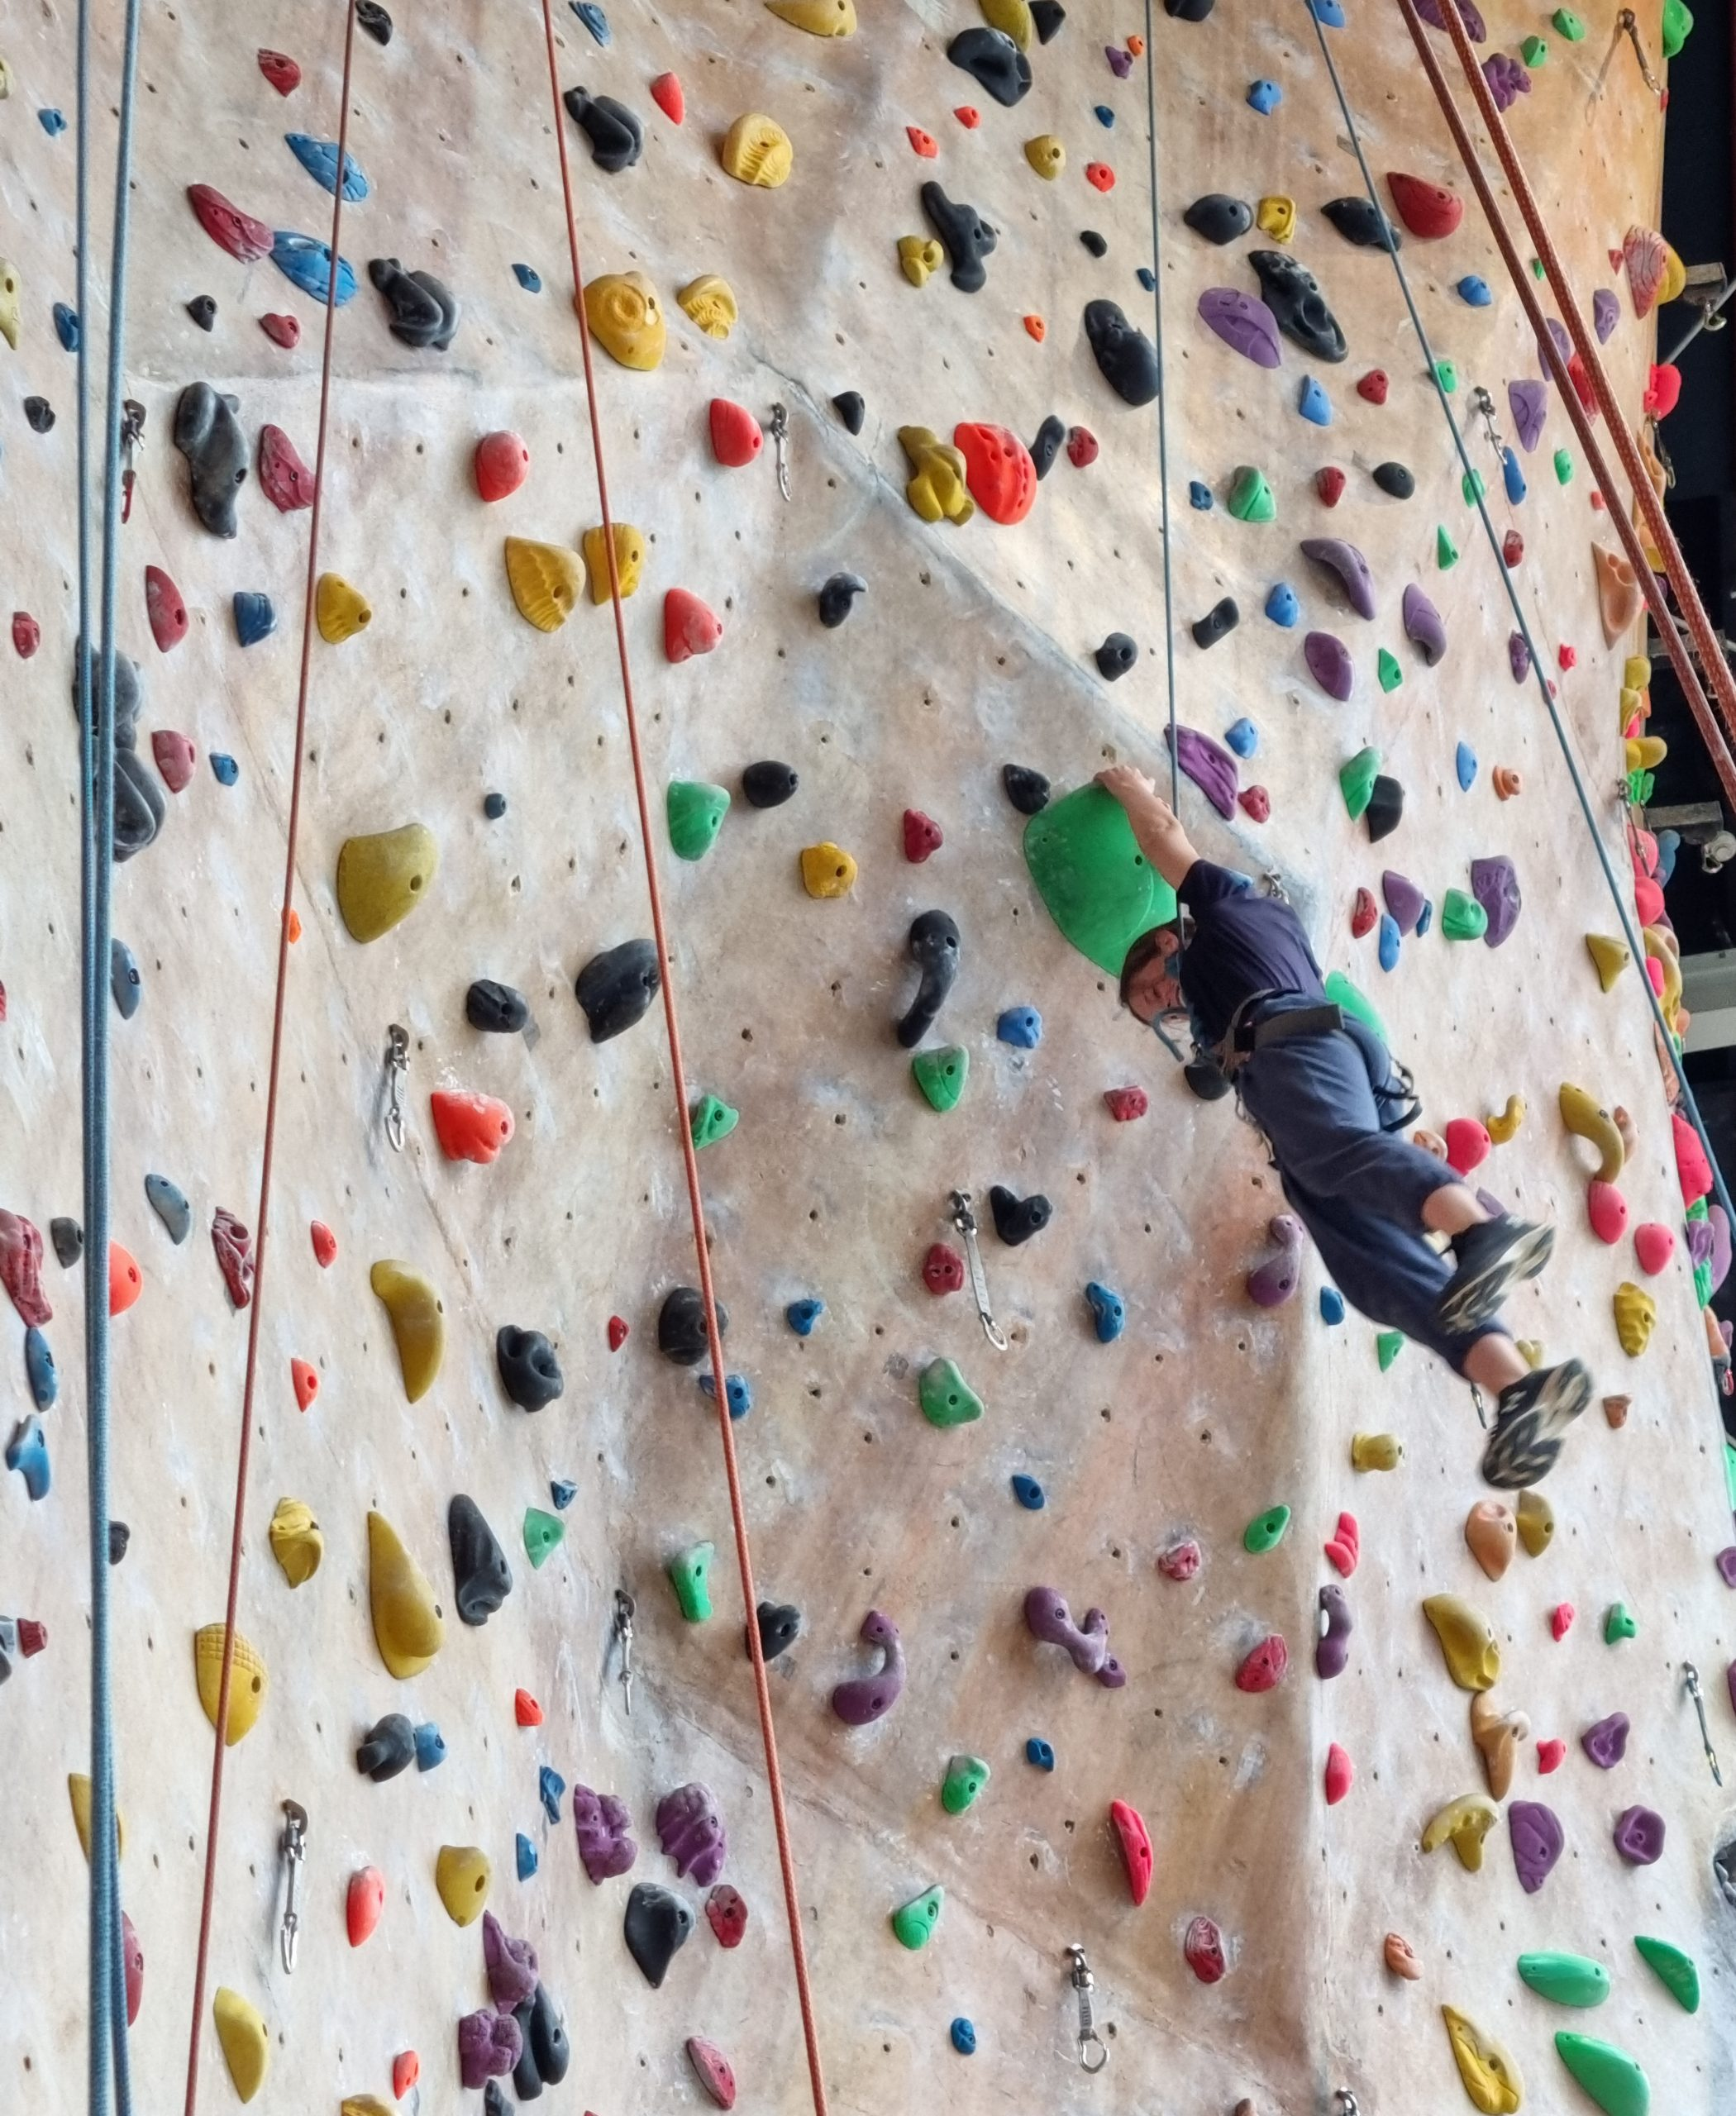 Rock Climbing 1 2 Scaled